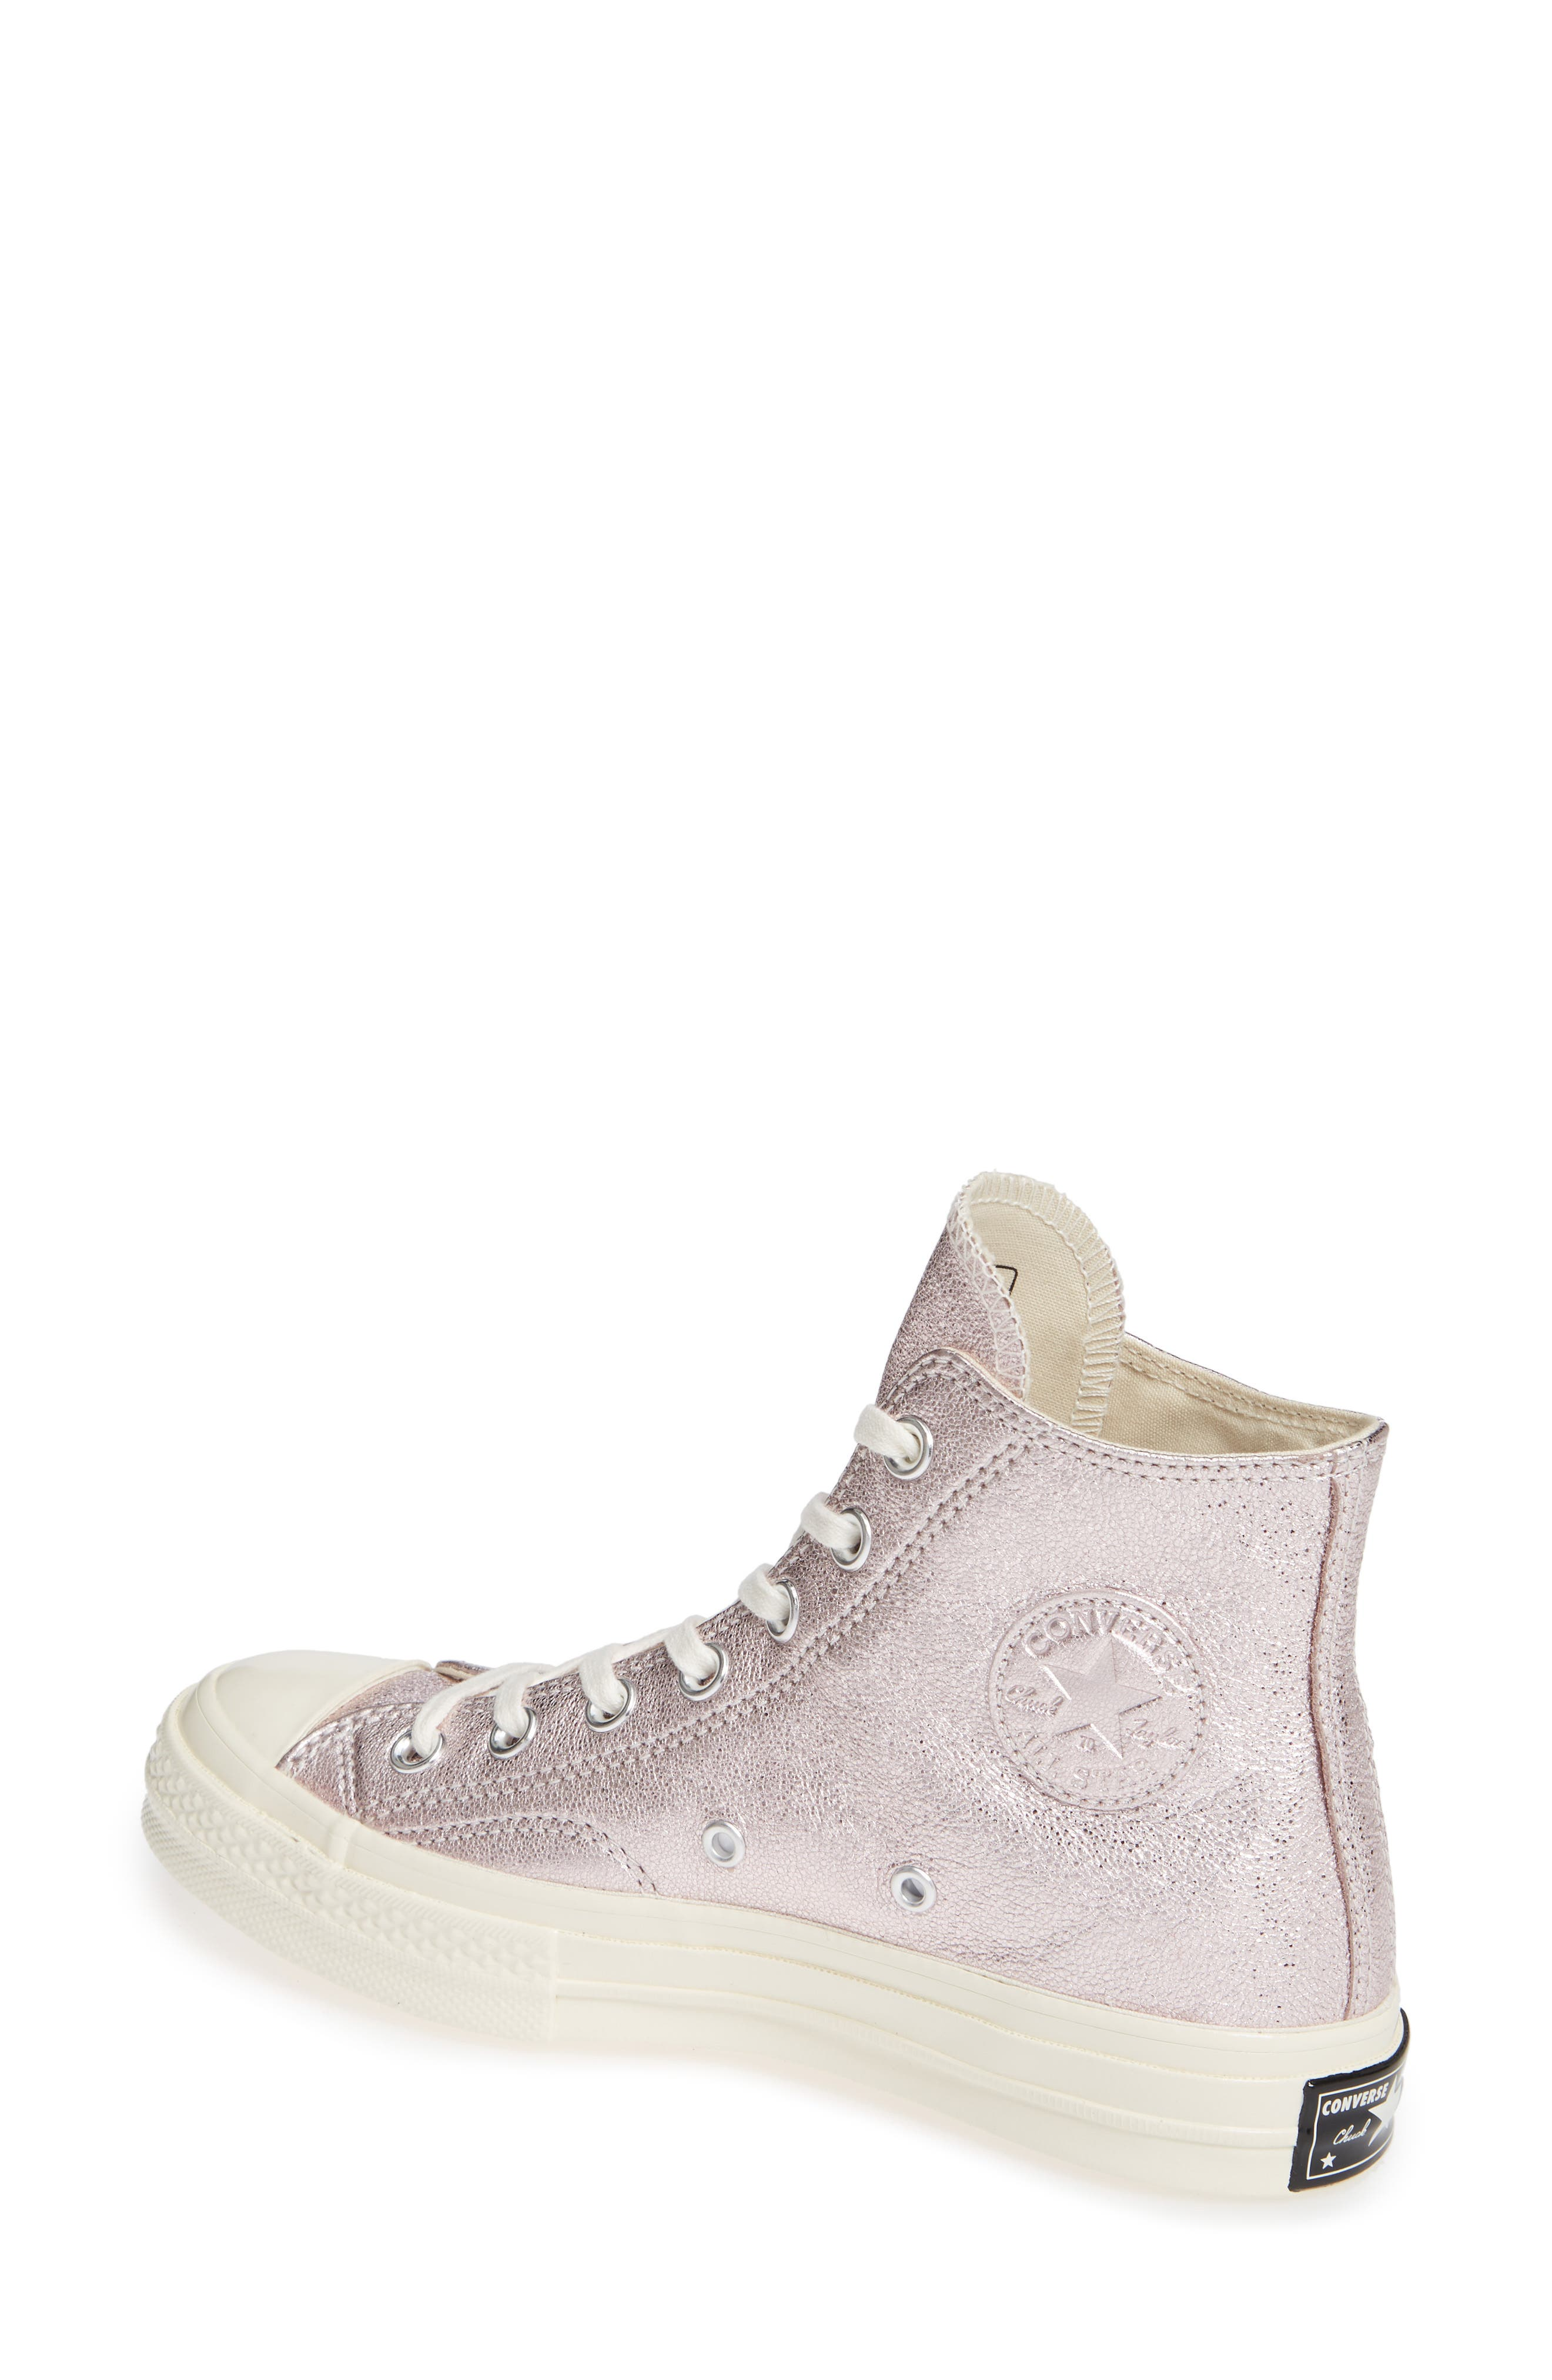 Chuck Taylor<sup>®</sup> All Star<sup>®</sup> Heavy Metal 70 High Top Sneaker,                             Alternate thumbnail 5, color,